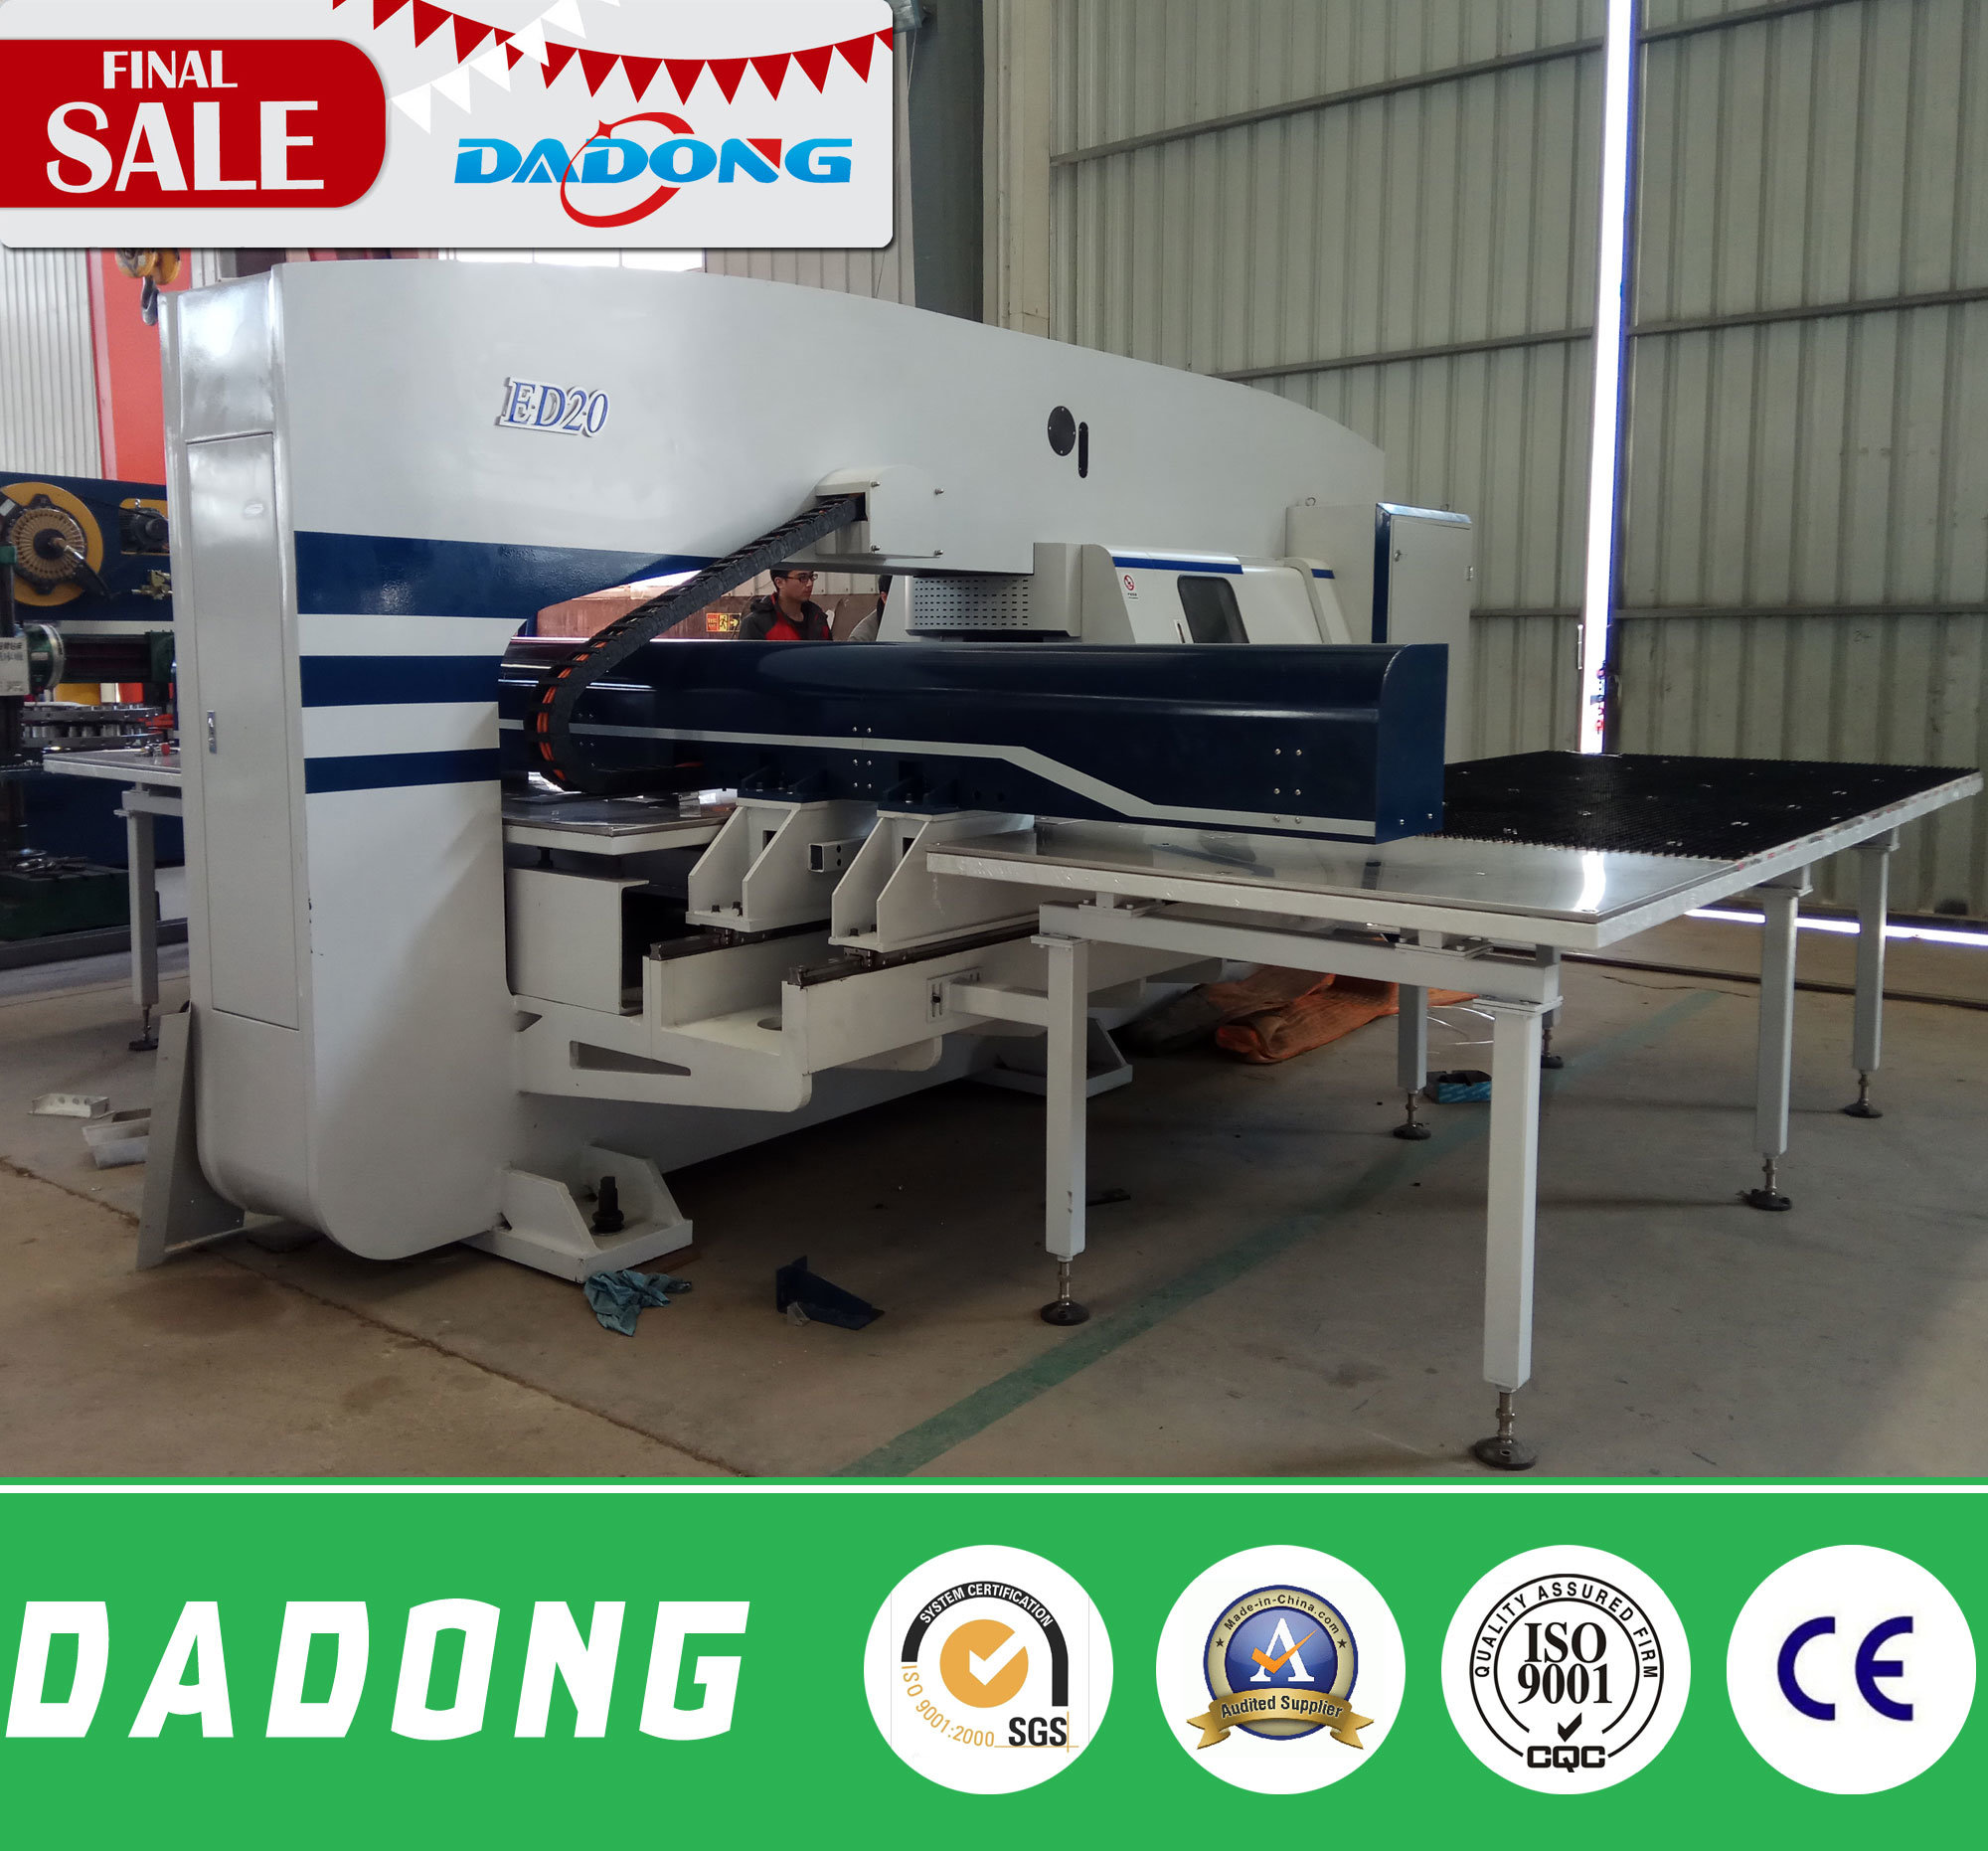 ED200 CNC Double Servo Turret Punching Machine/Stamping Machine